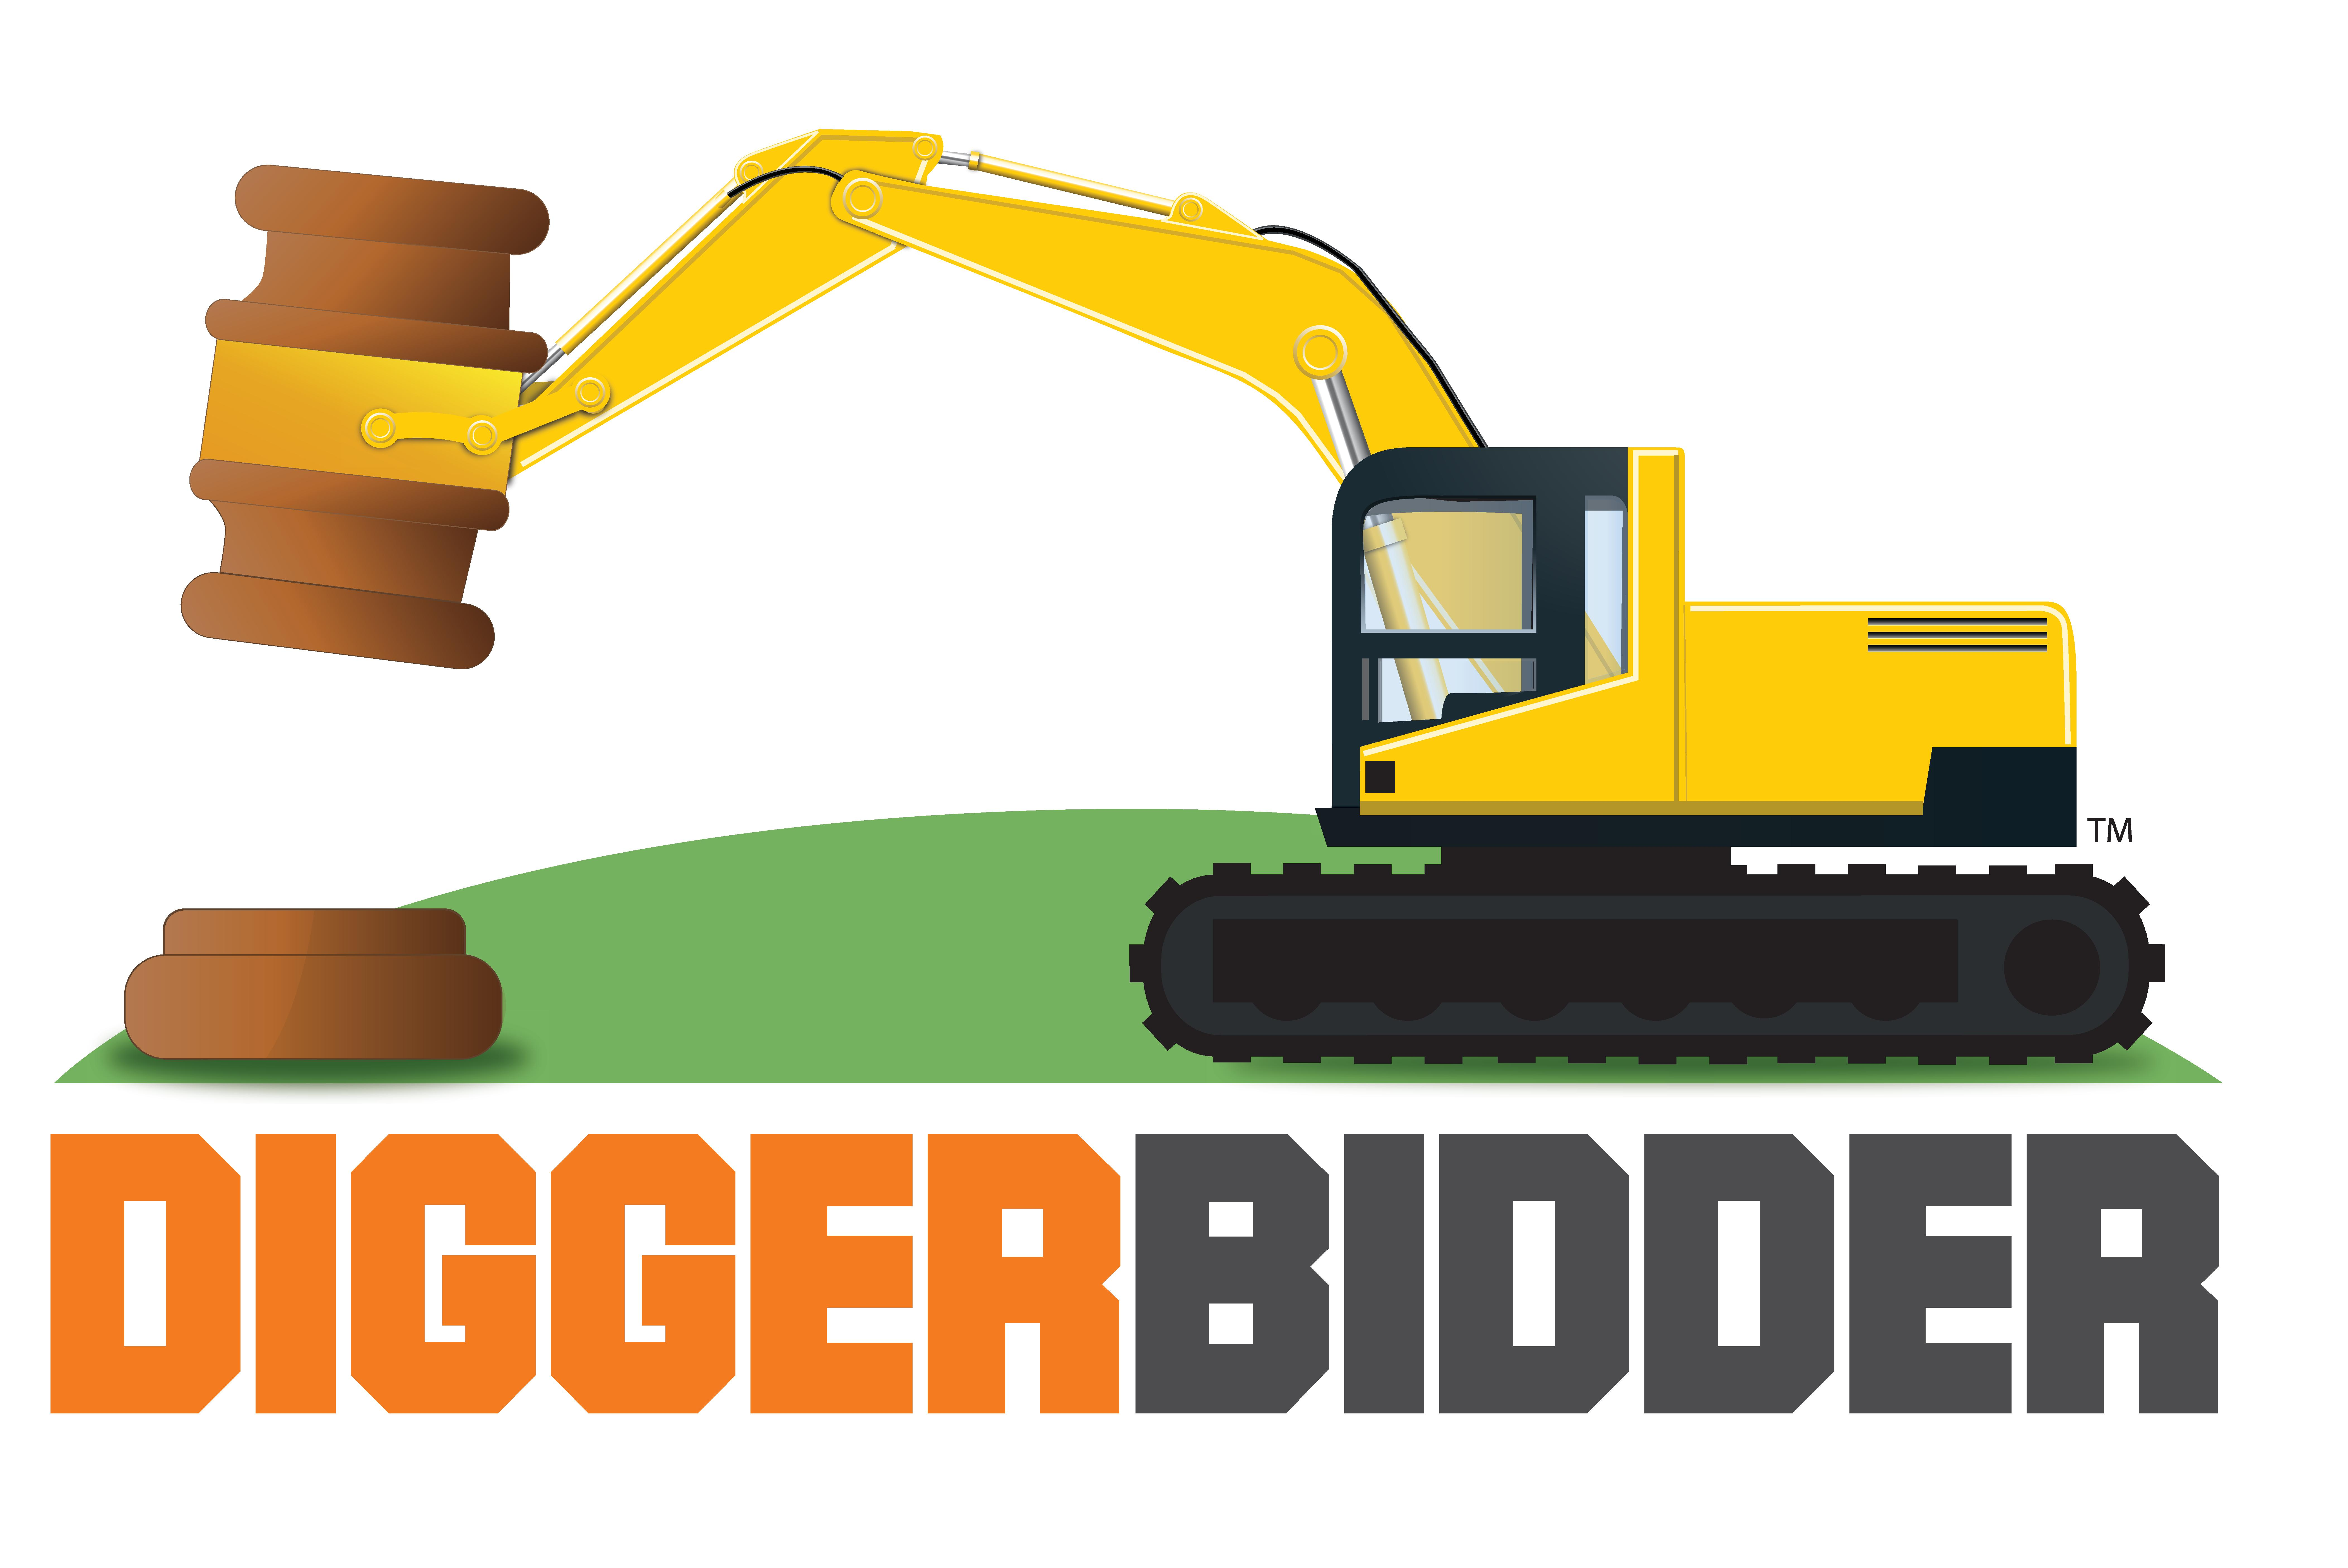 Digger bidder the new. Backhoe clipart plant machinery black and white